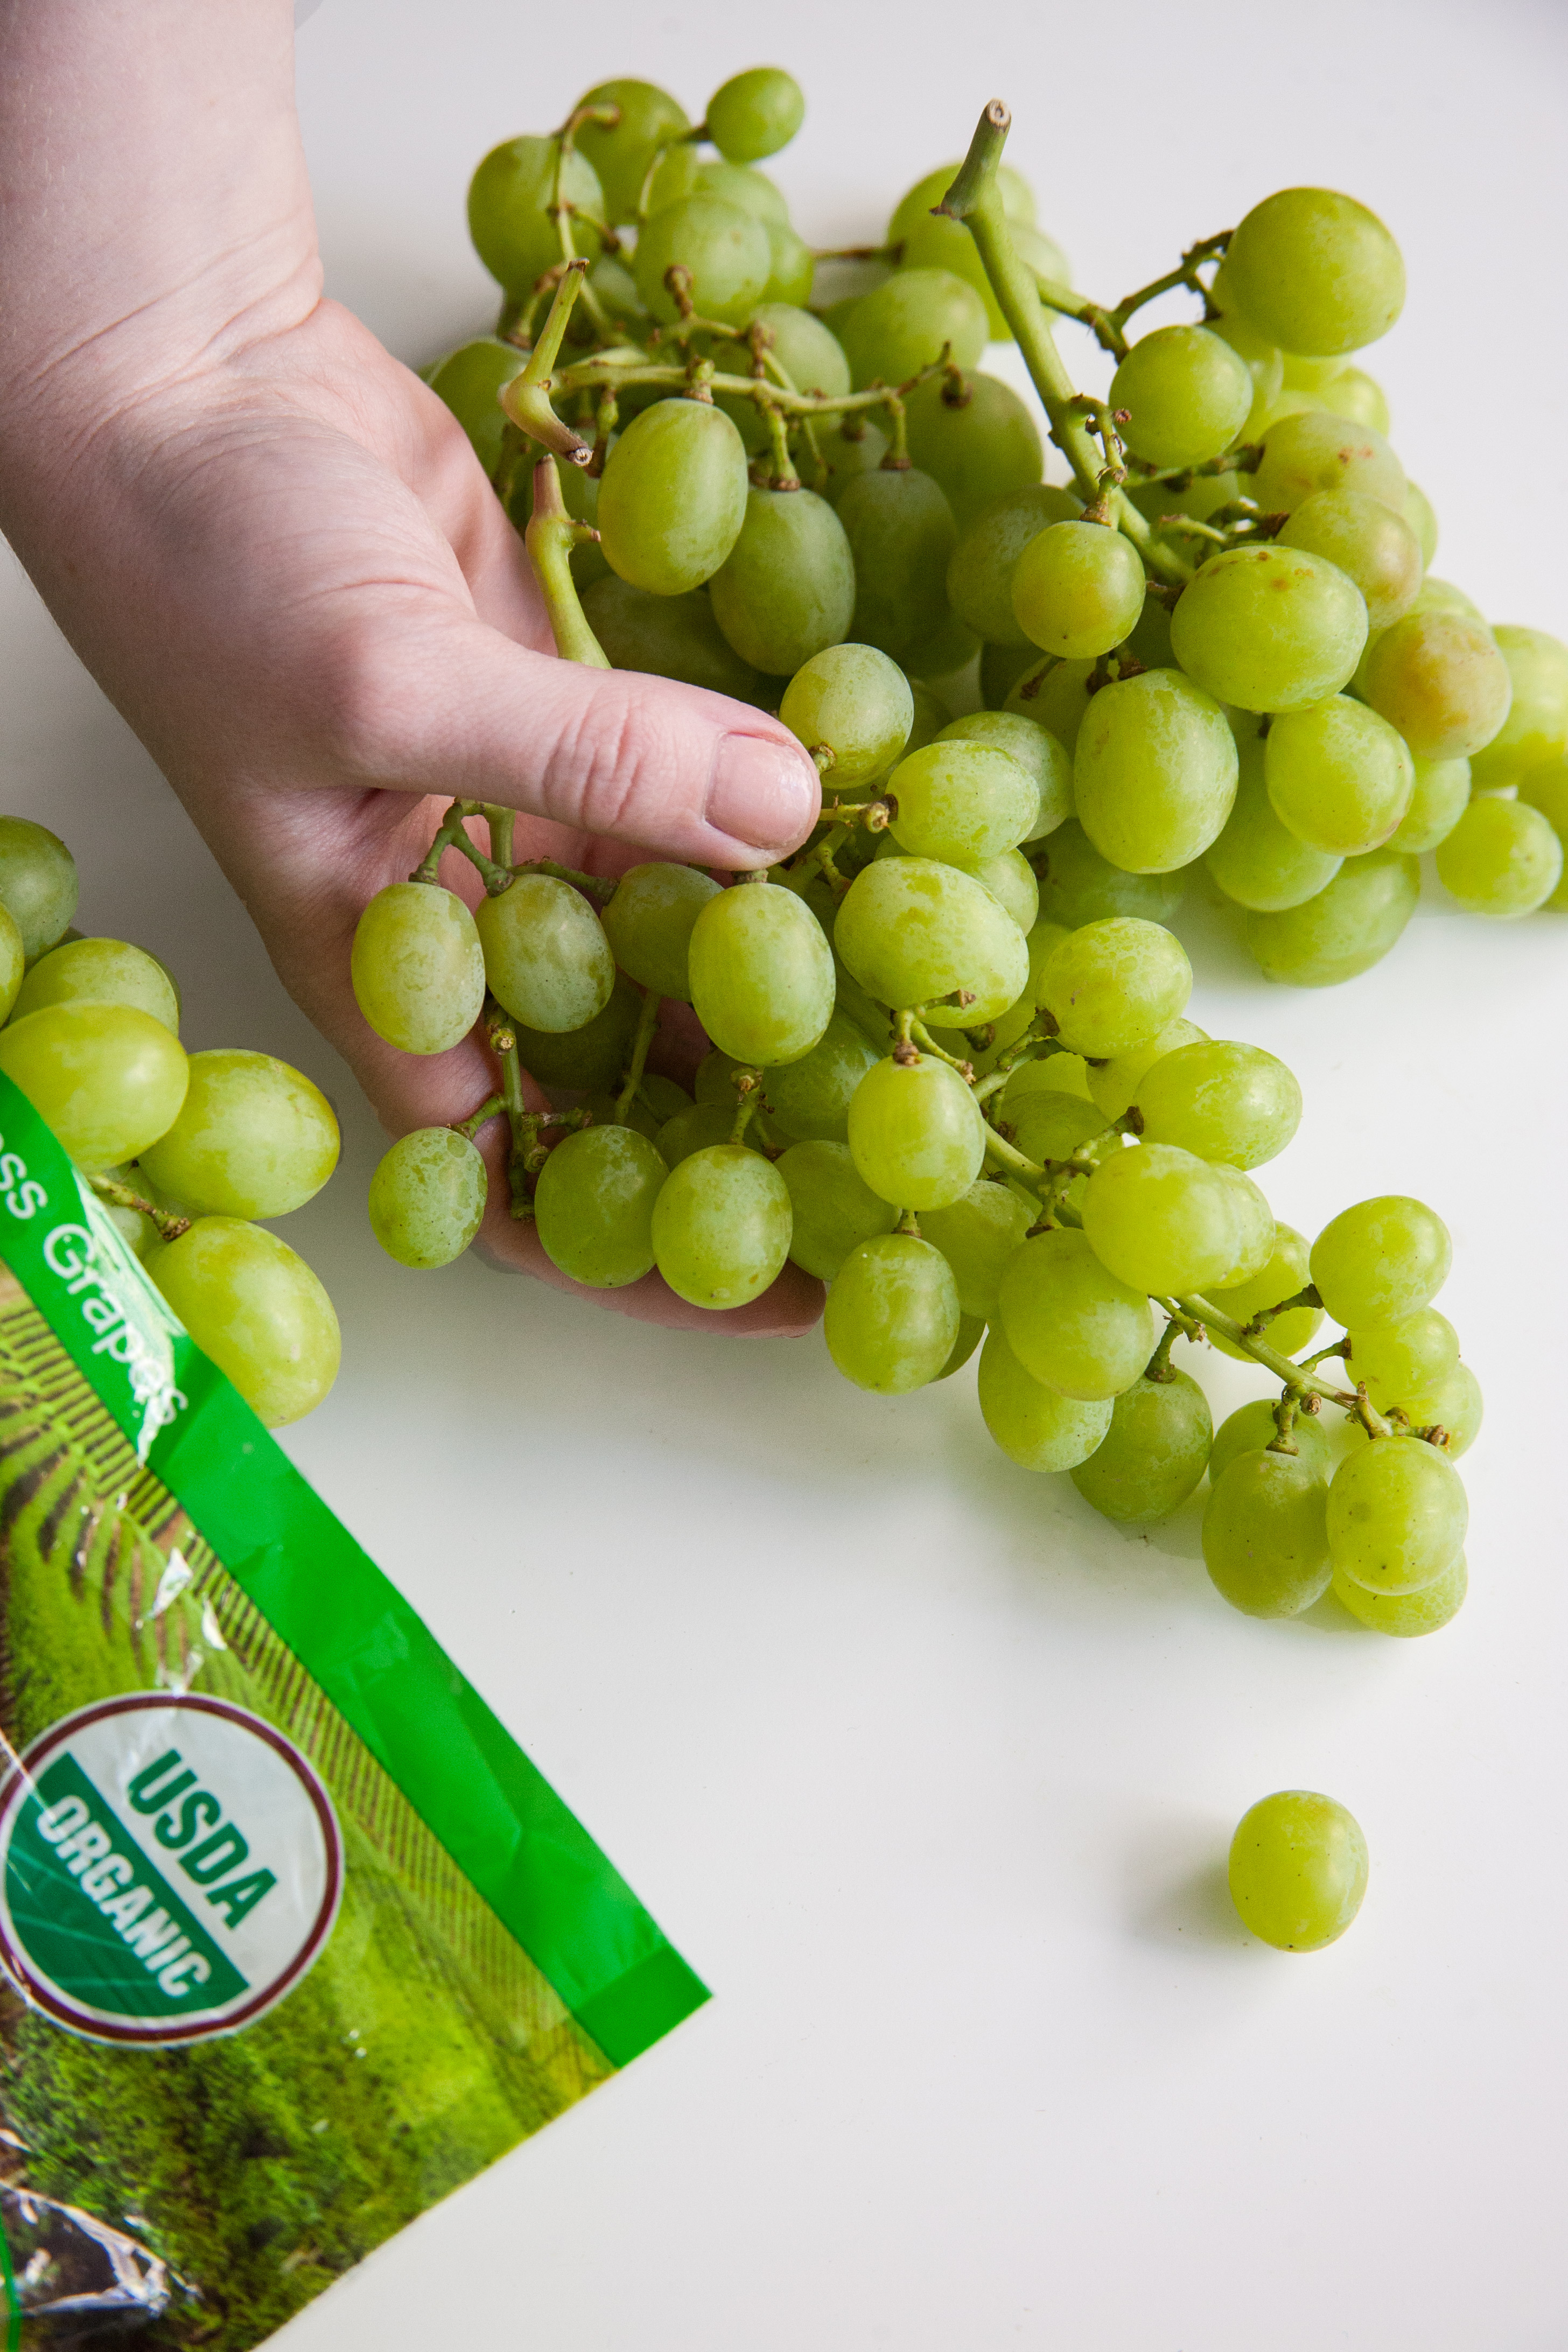 Here's What 1 Pound of Grapes Looks Like | Kitchn